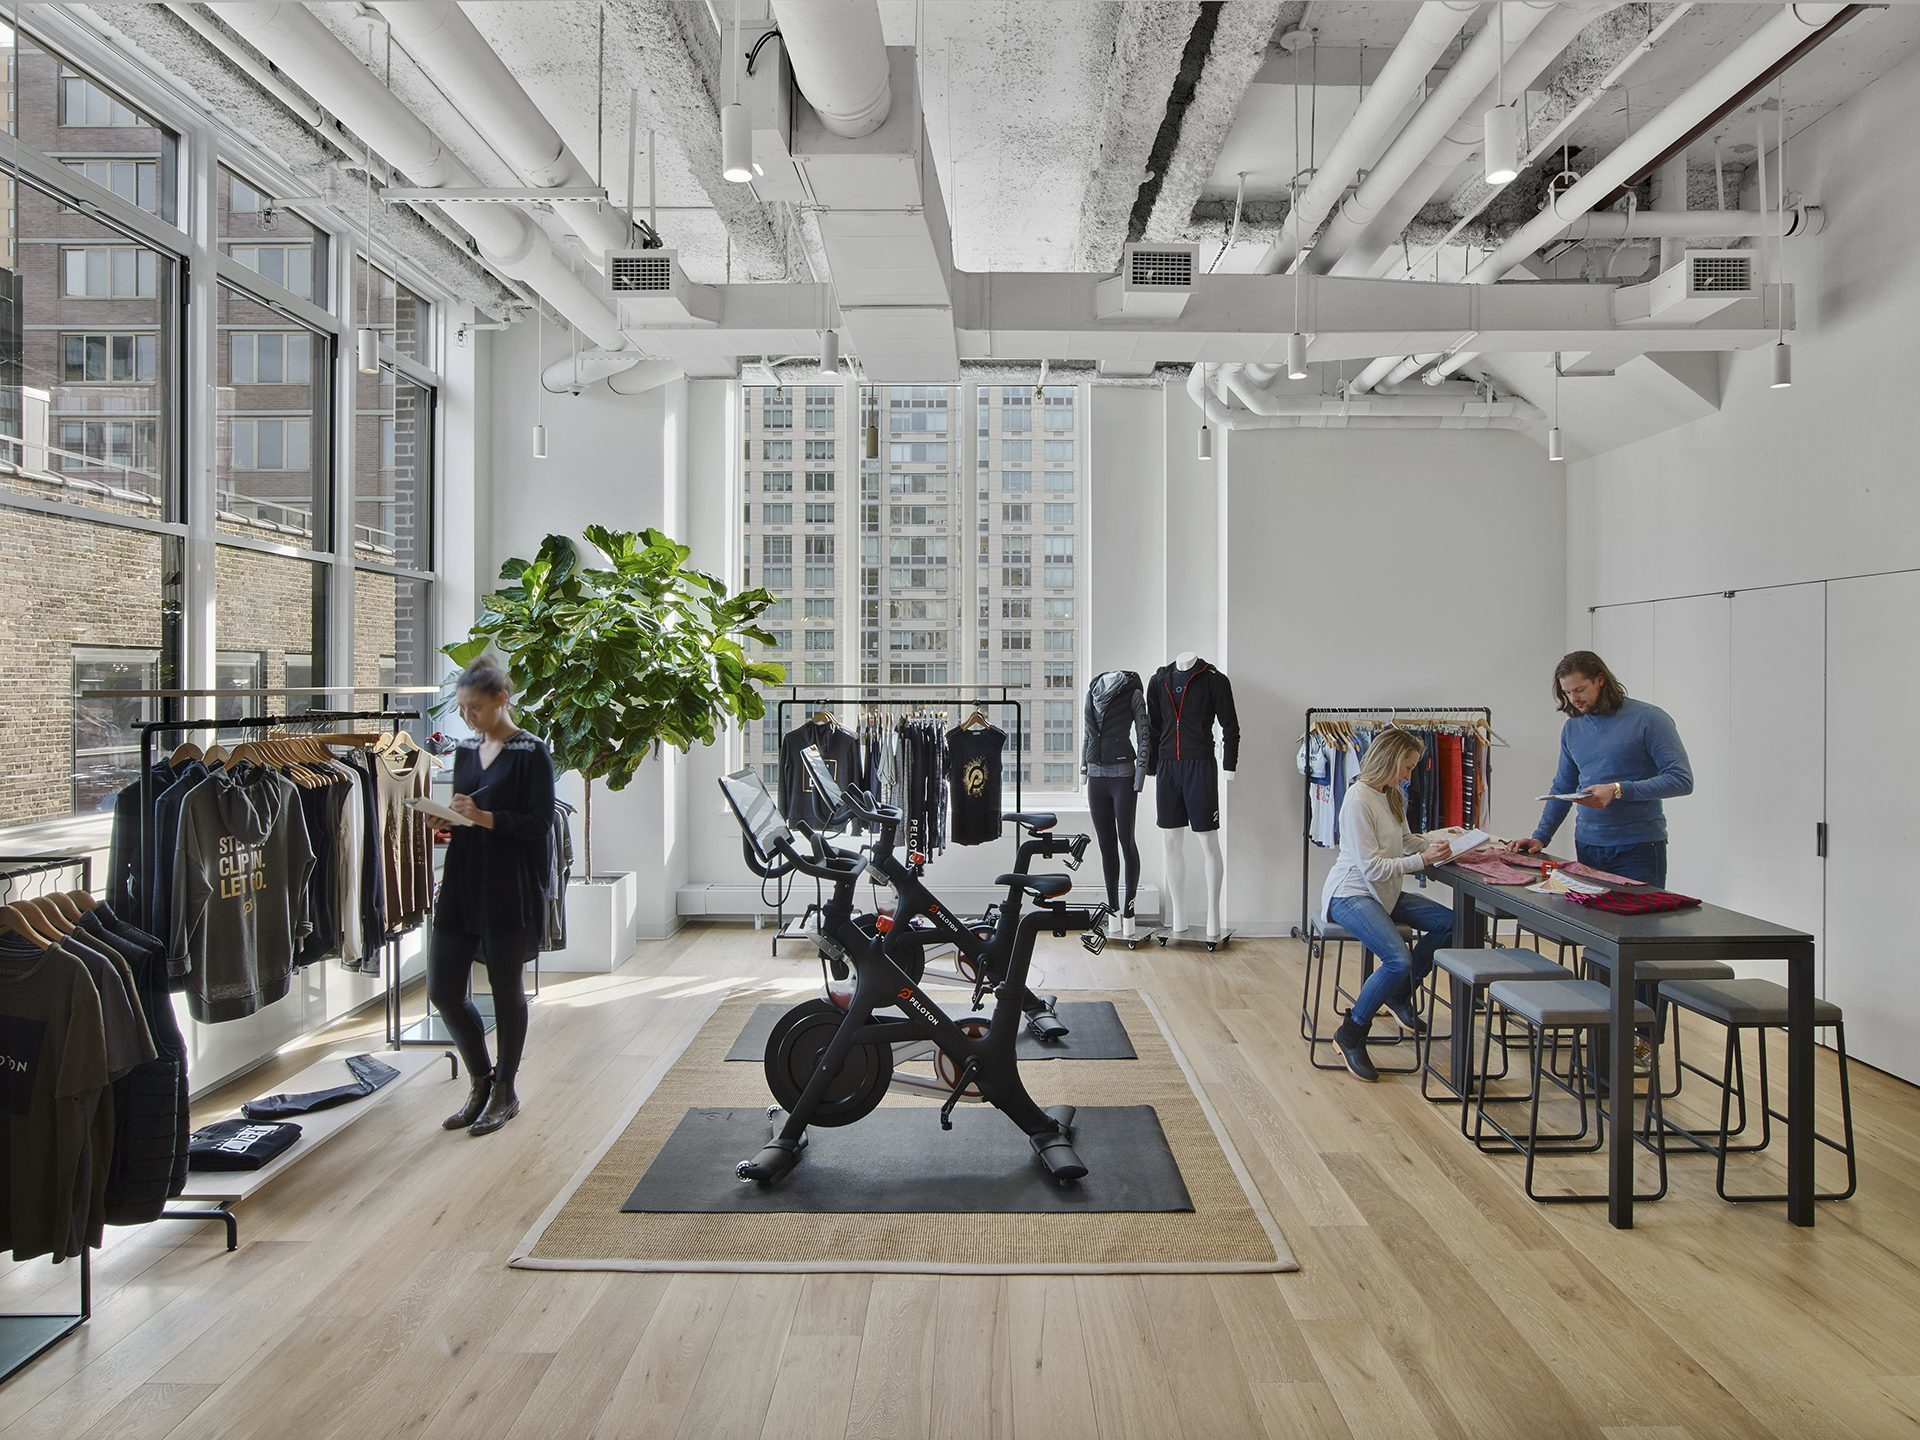 The Peloton apparel team has their own dedicated showroom just off the main entrance. This is where they can display merchandise for clients in a highly curated setting.